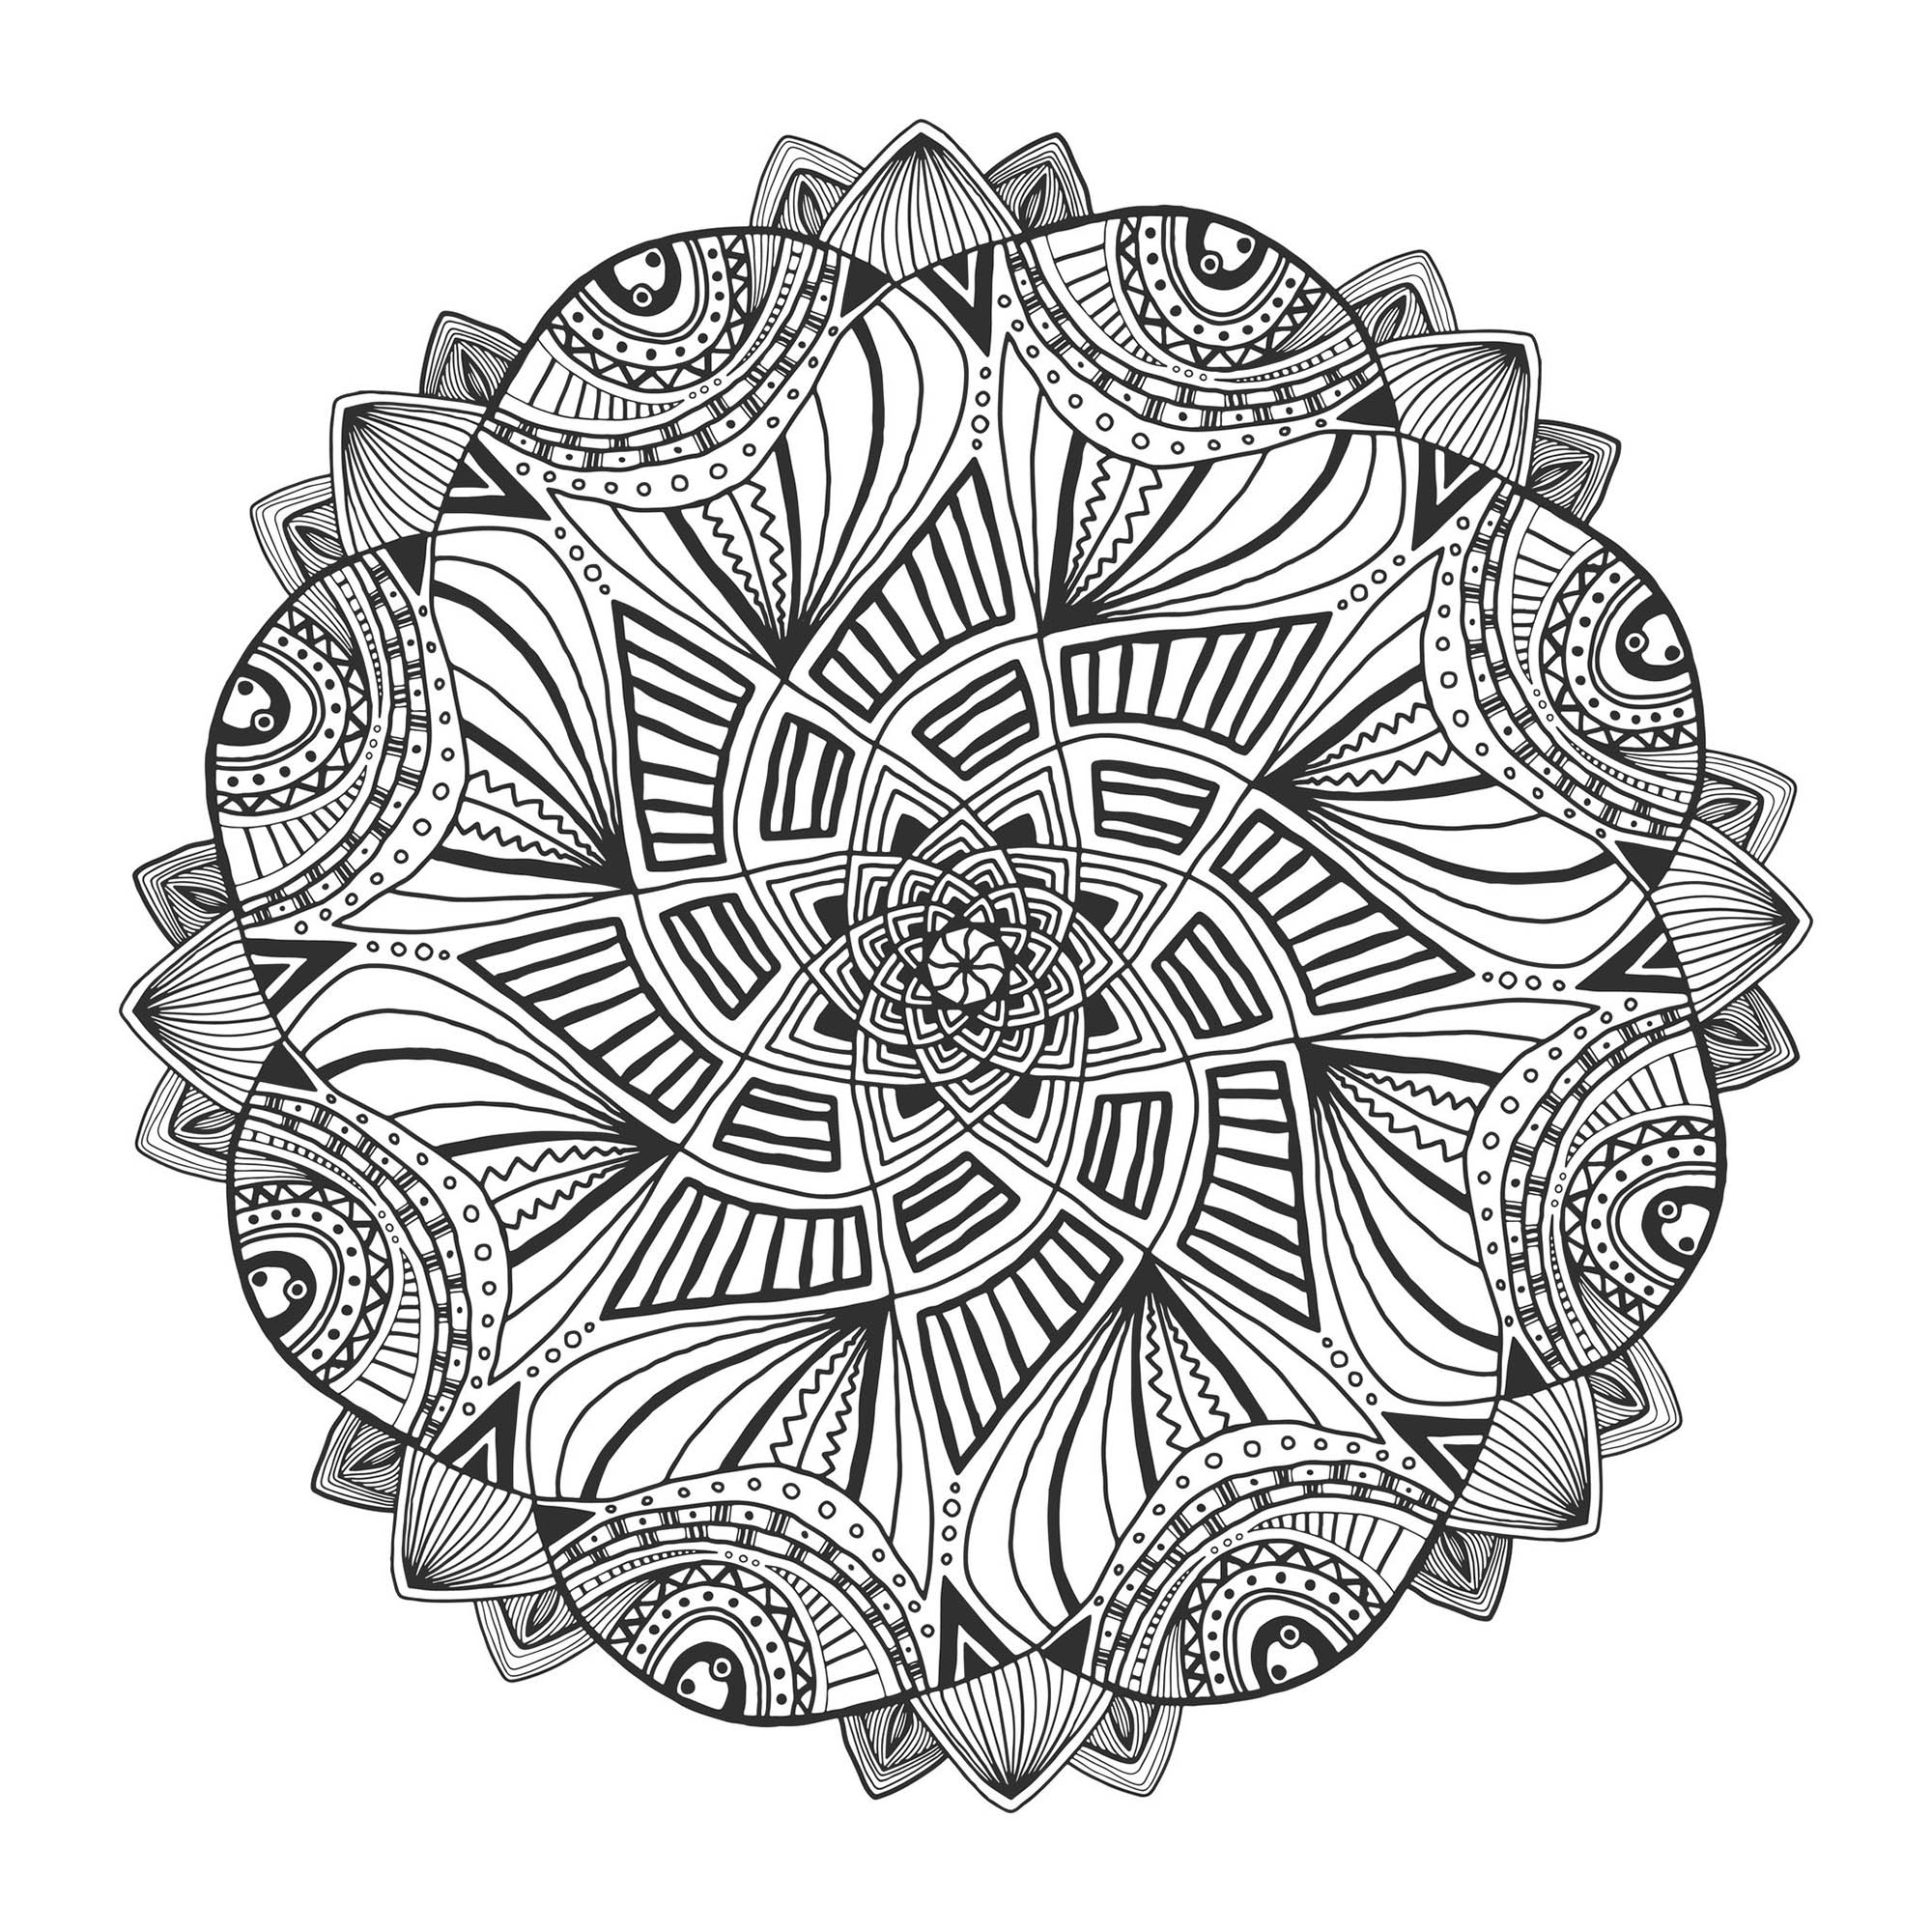 designs for coloring tessellation patterns coloring pages coloring home designs for coloring